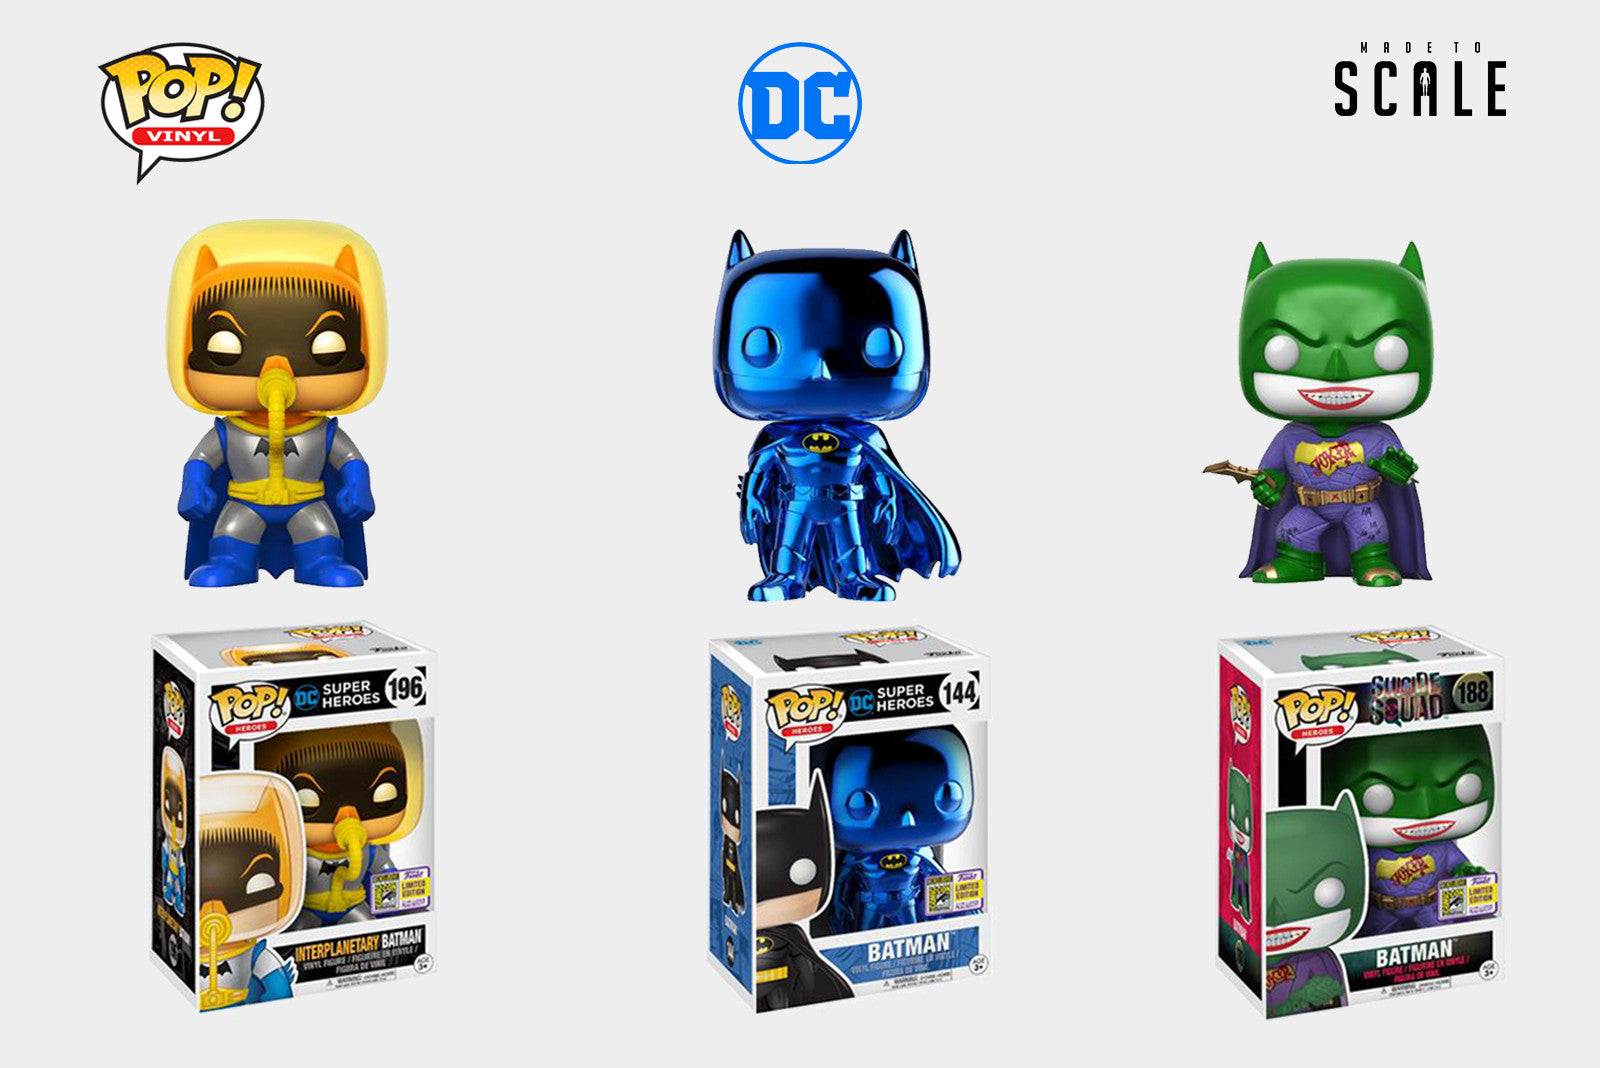 Funko Pop Vinyl SDCC 2017 DC Exclusives - Joker Batman, Aquaman, Bruce Wayne, Ares, Interplanetary Batman, Blue Chrome Batman, Wonder Twins, Man Bat